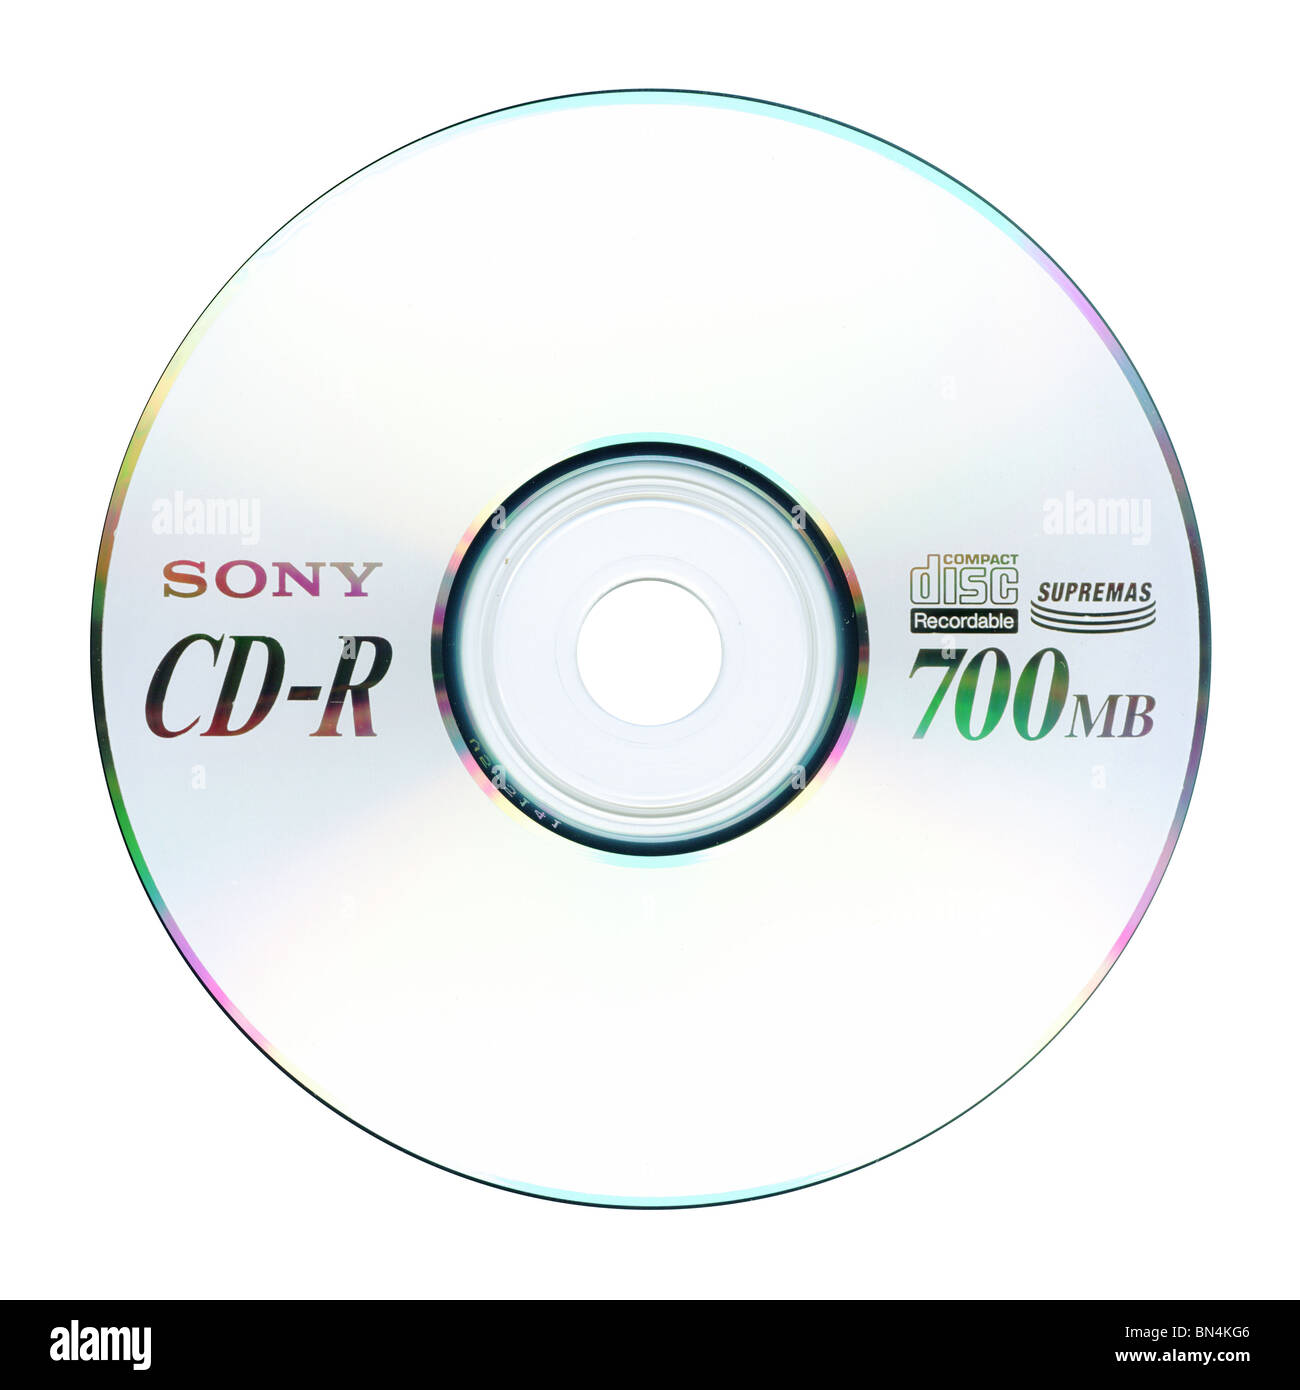 sony cd r compact disc 700mb stock photo royalty free image 30221302 alamy. Black Bedroom Furniture Sets. Home Design Ideas